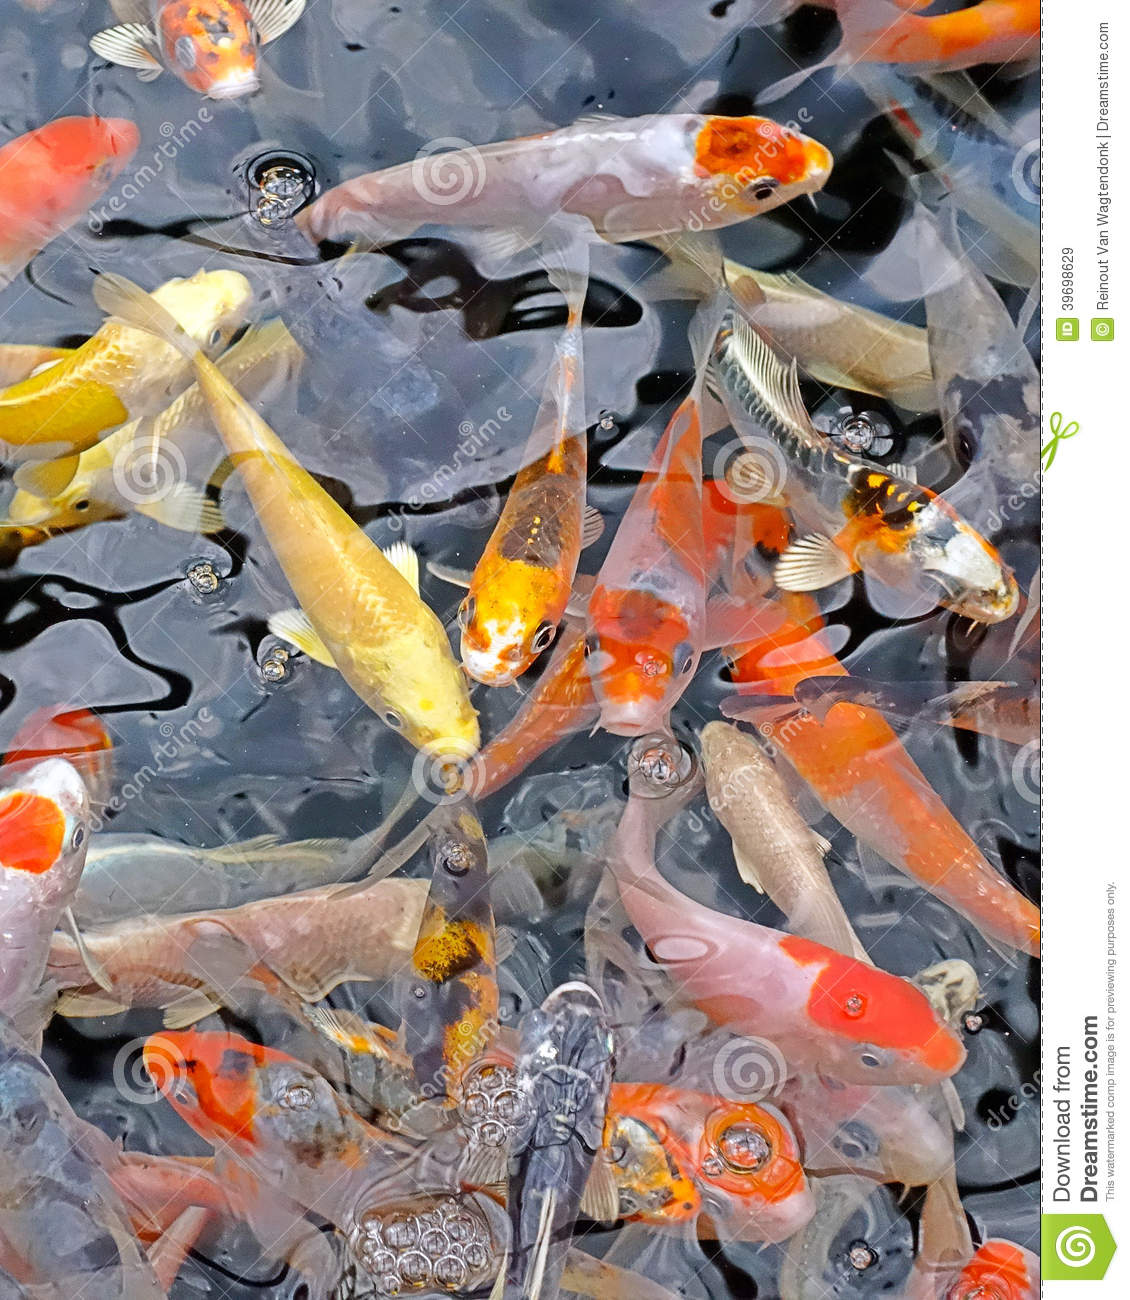 School of small koi fish stock photo image 39698629 for Tiny koi fish